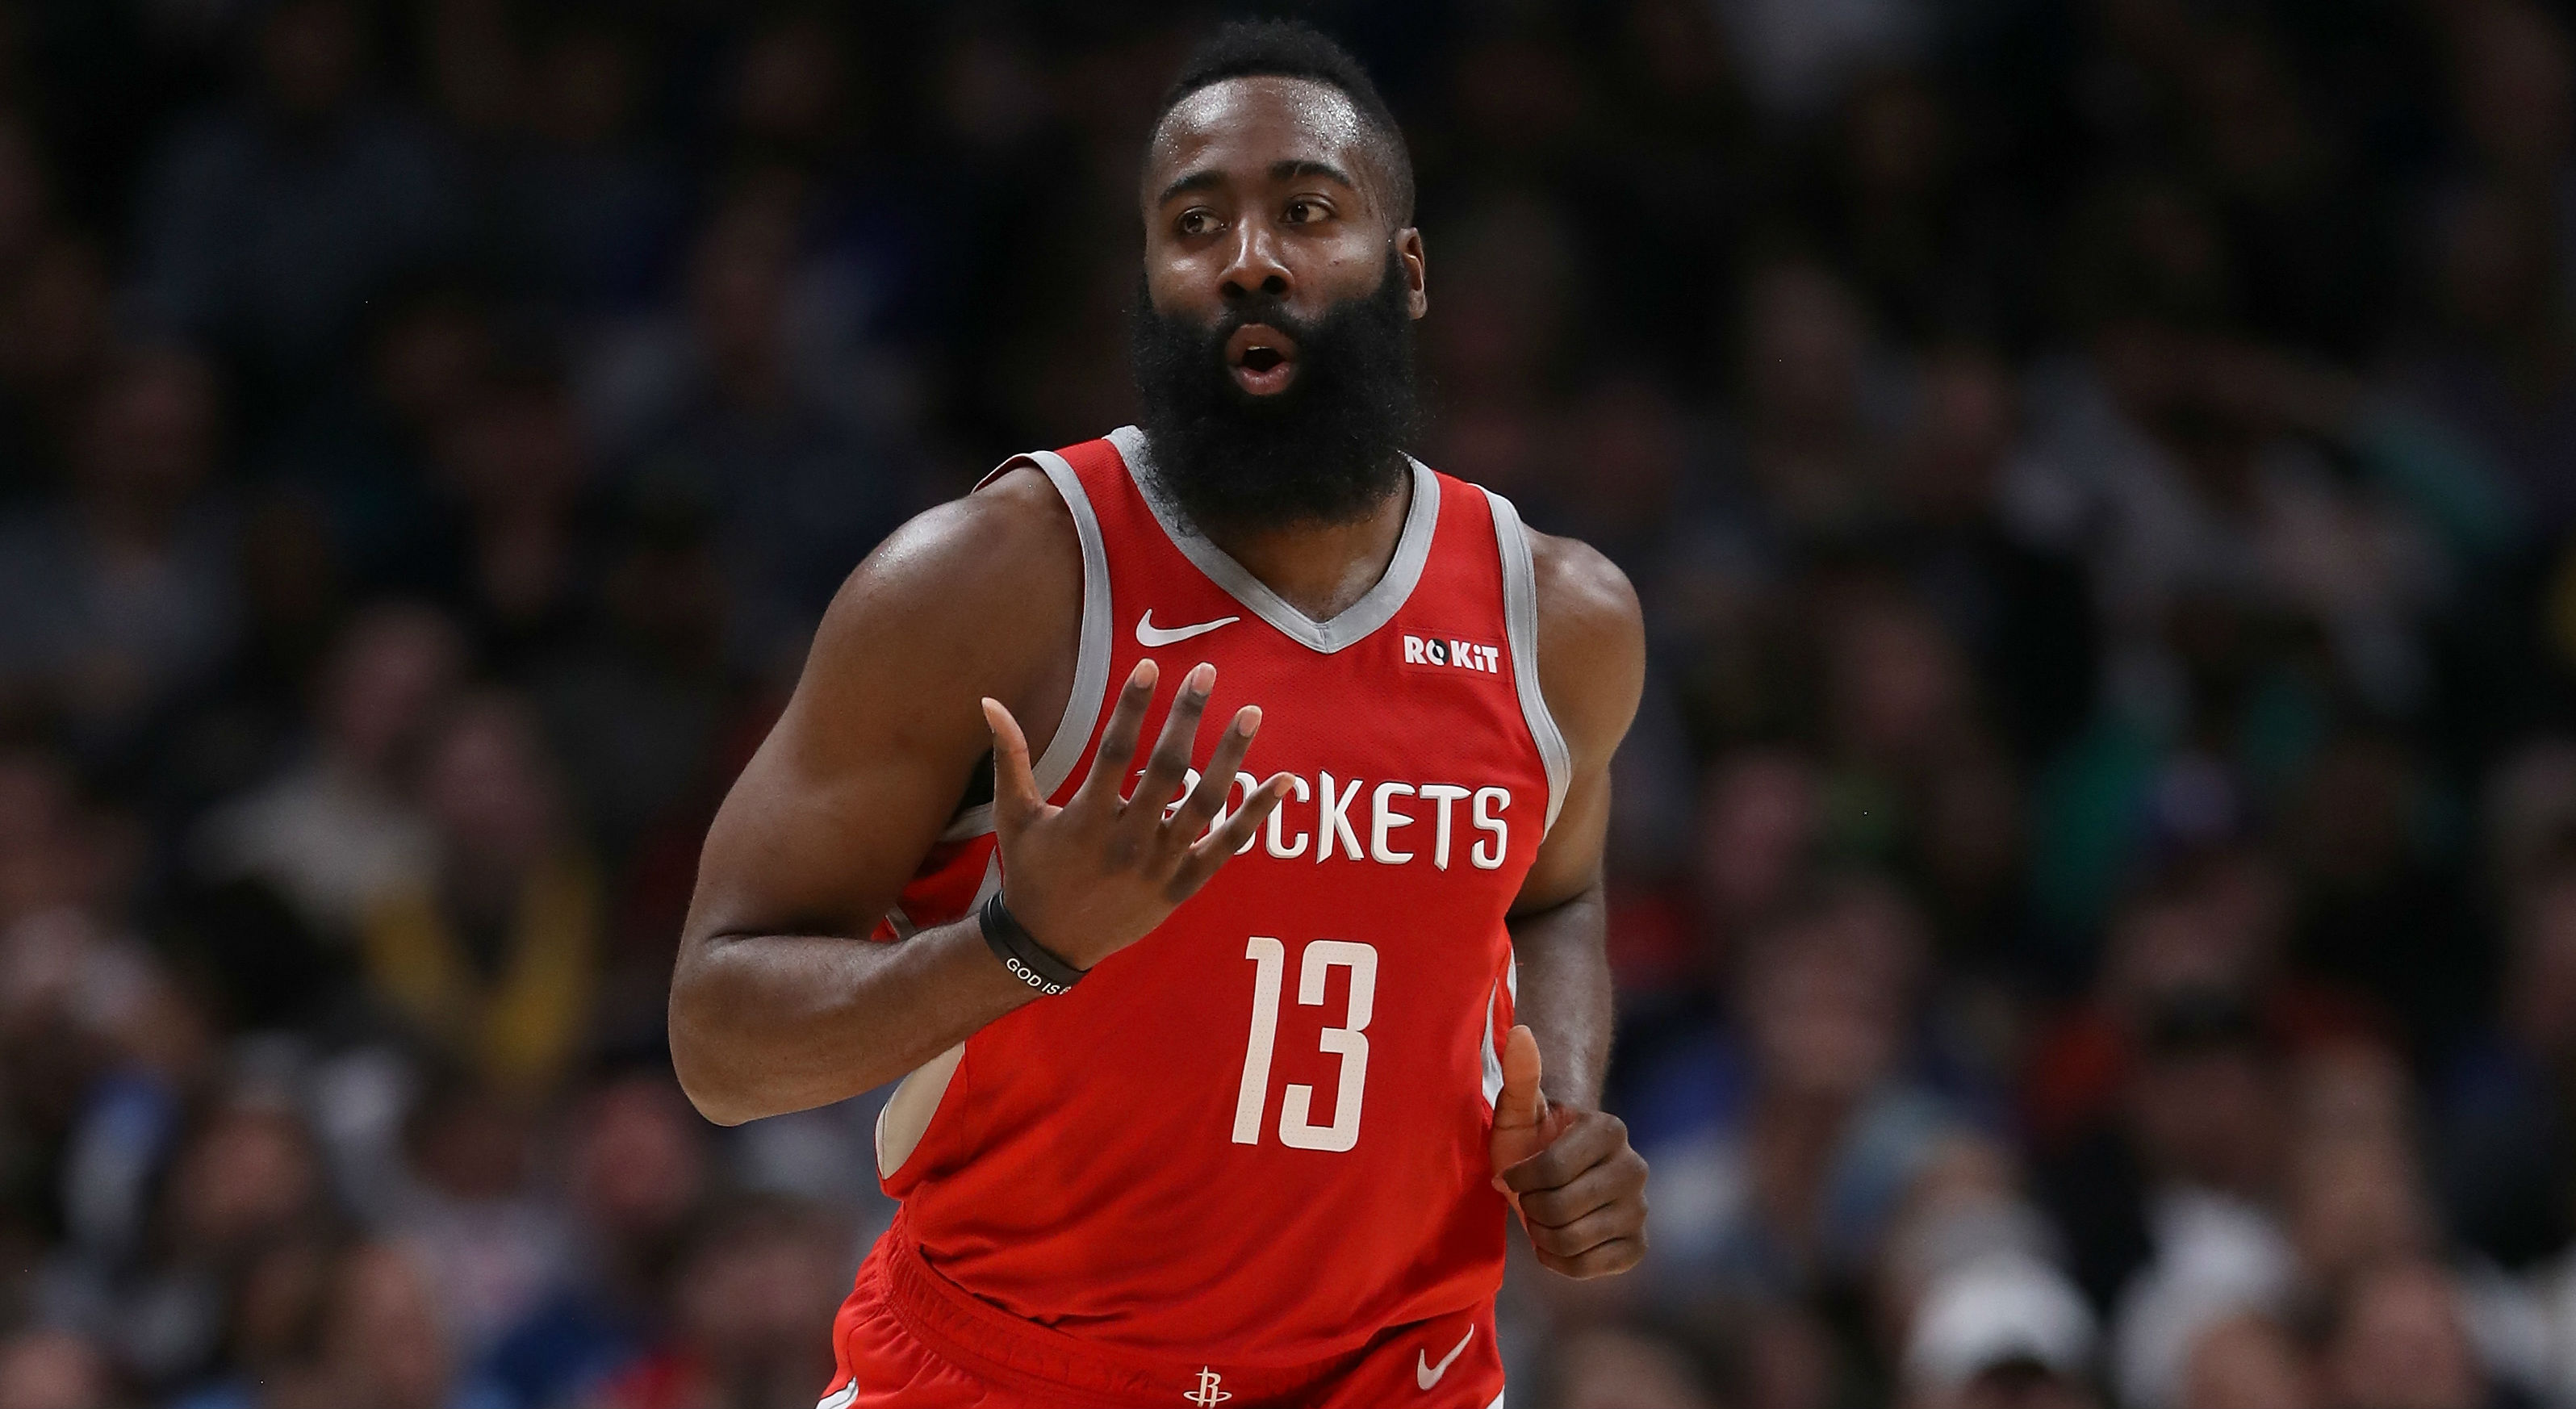 James Harden: Forget the fouls, focus on my greatness